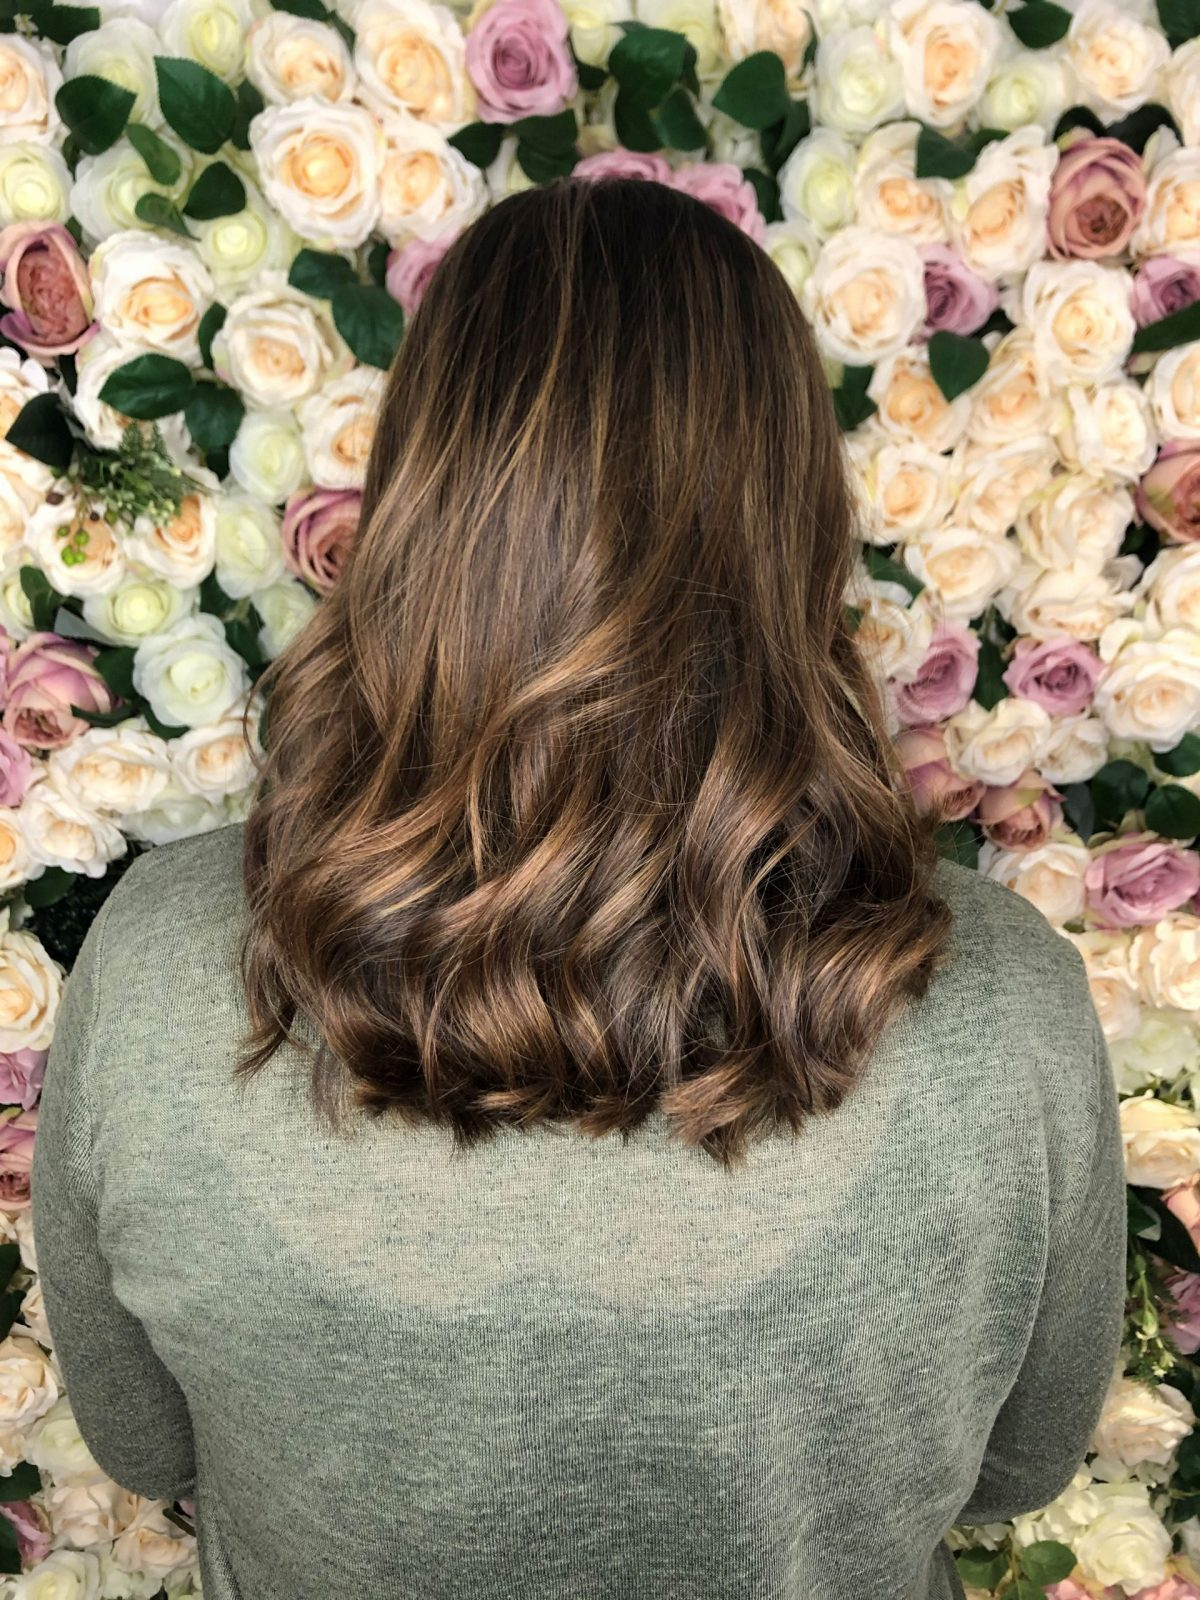 My Hair is Boring… What Can I Do?